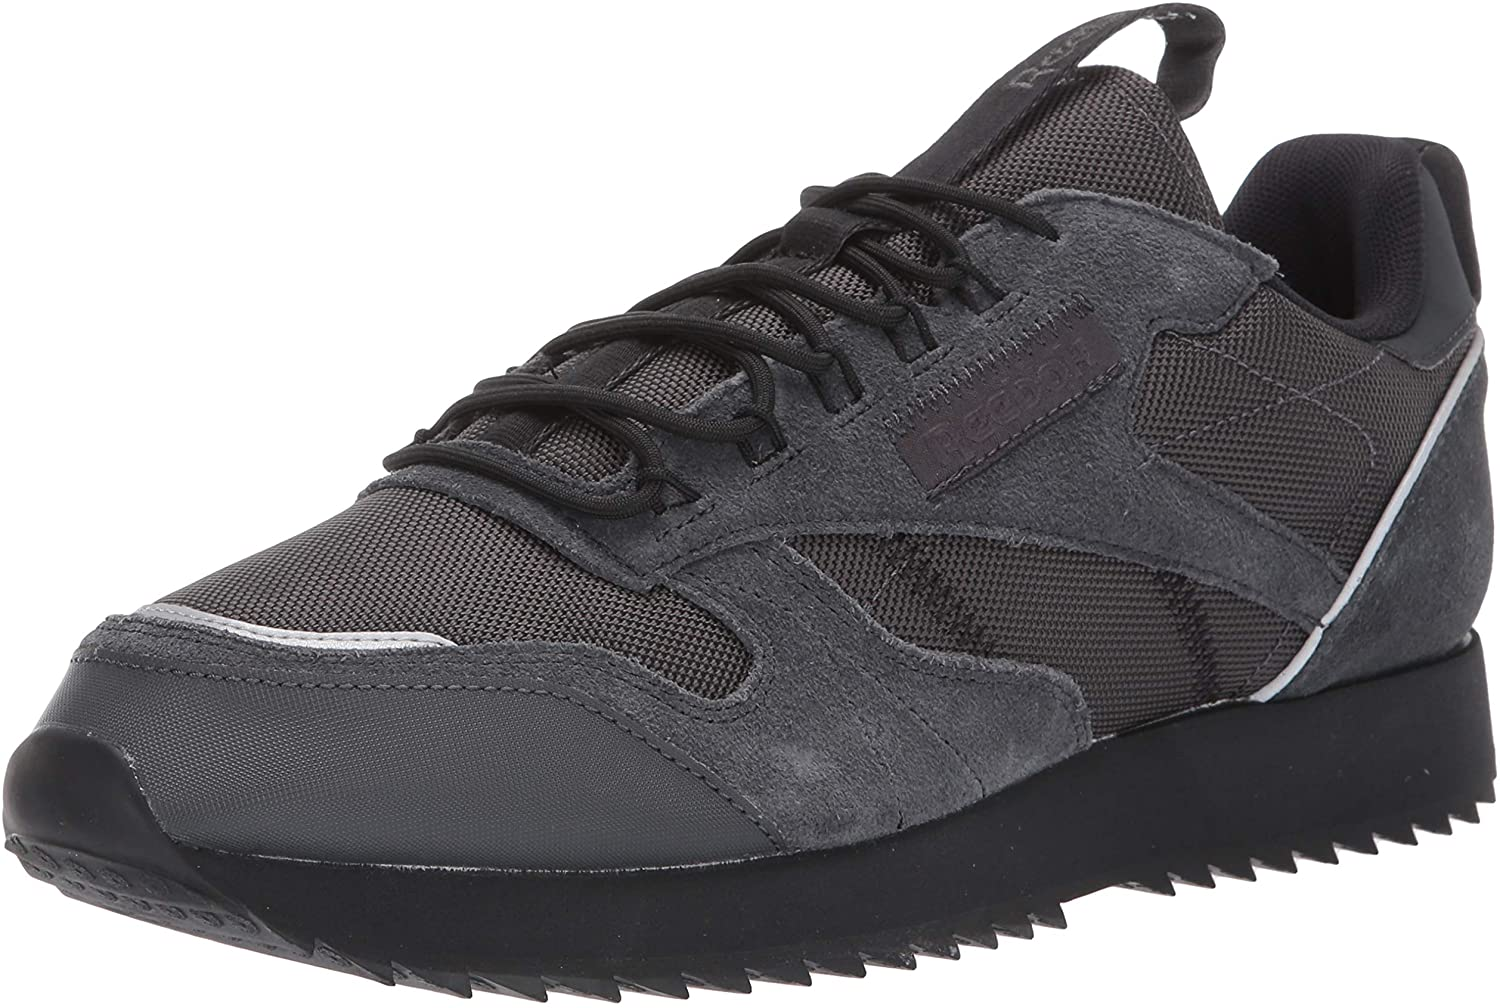 Reebok Men s Classic Leather Sneaker, Grey Black Panton, 7.5 M US